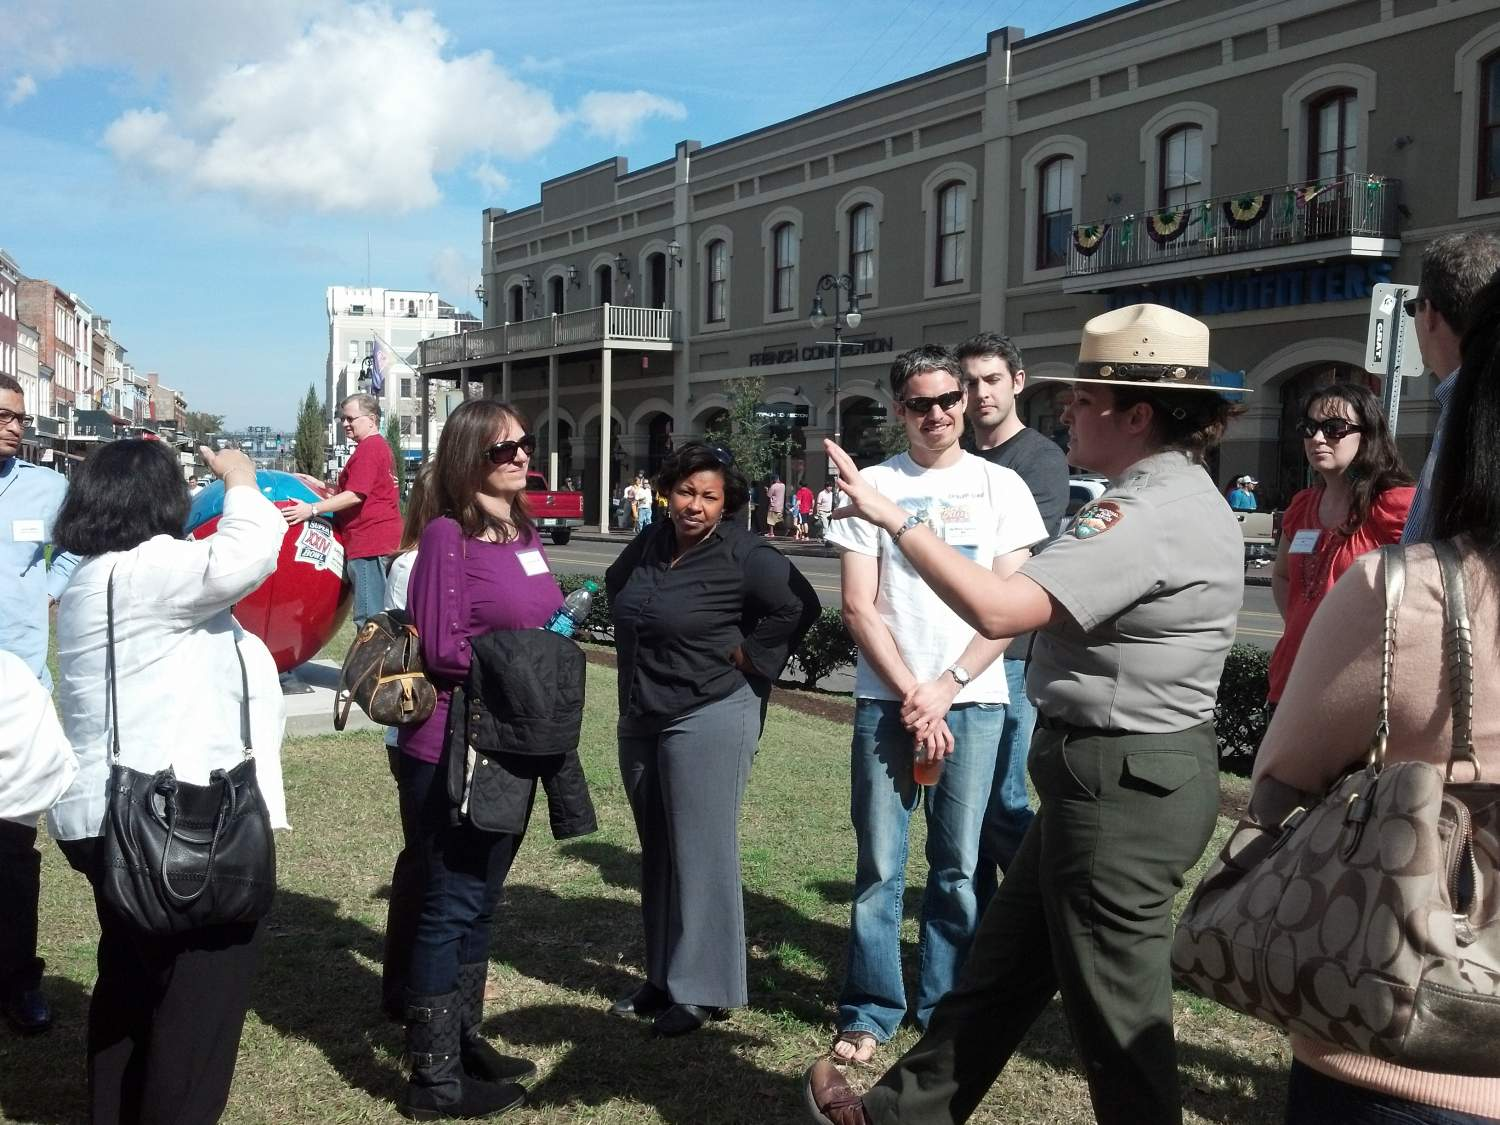 NPS Ranger Leads Health Care Providers on a Nature Walk